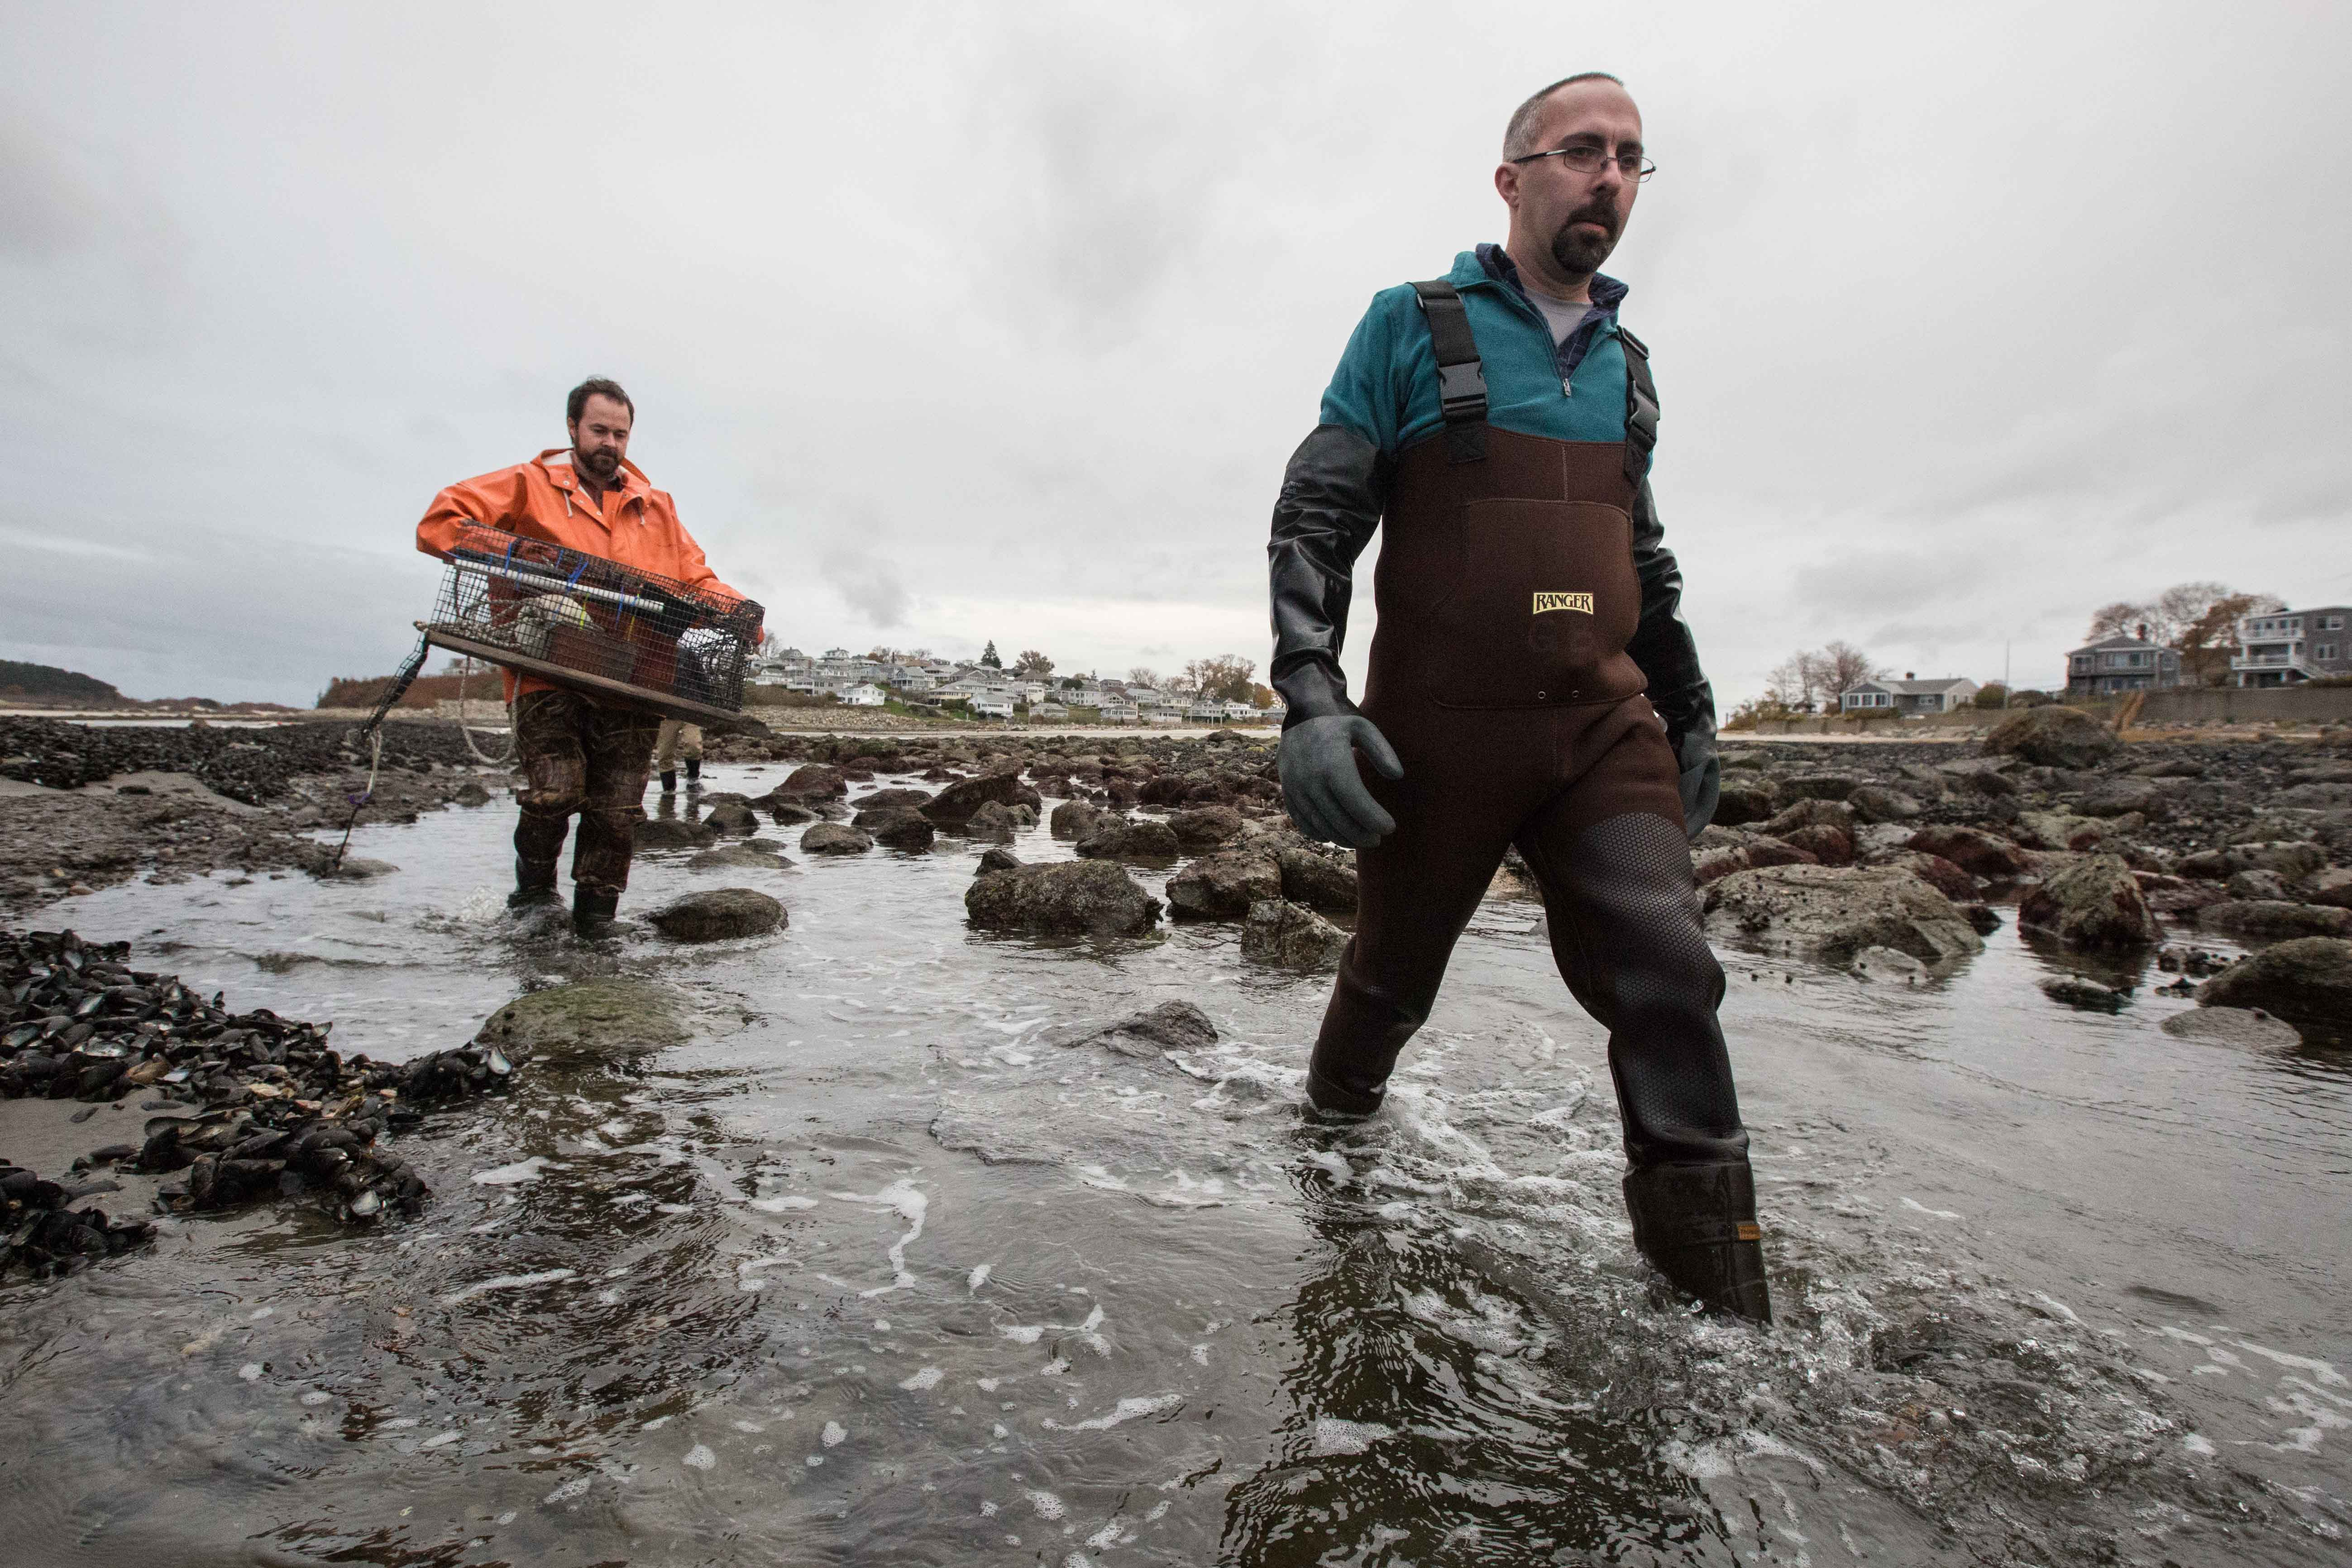 Ryan Joyce (in the orange coat) and Greg Bettencourt, both with the Massachusetts Division of Marine Fisheries, get ready to test the water off Pavilion Beach in Ipswich to investigate why local mussels are flourishing. Their findings could help others establish new mussel beds on the marsh. (Photo by Coco McCabe/GroundTruth)